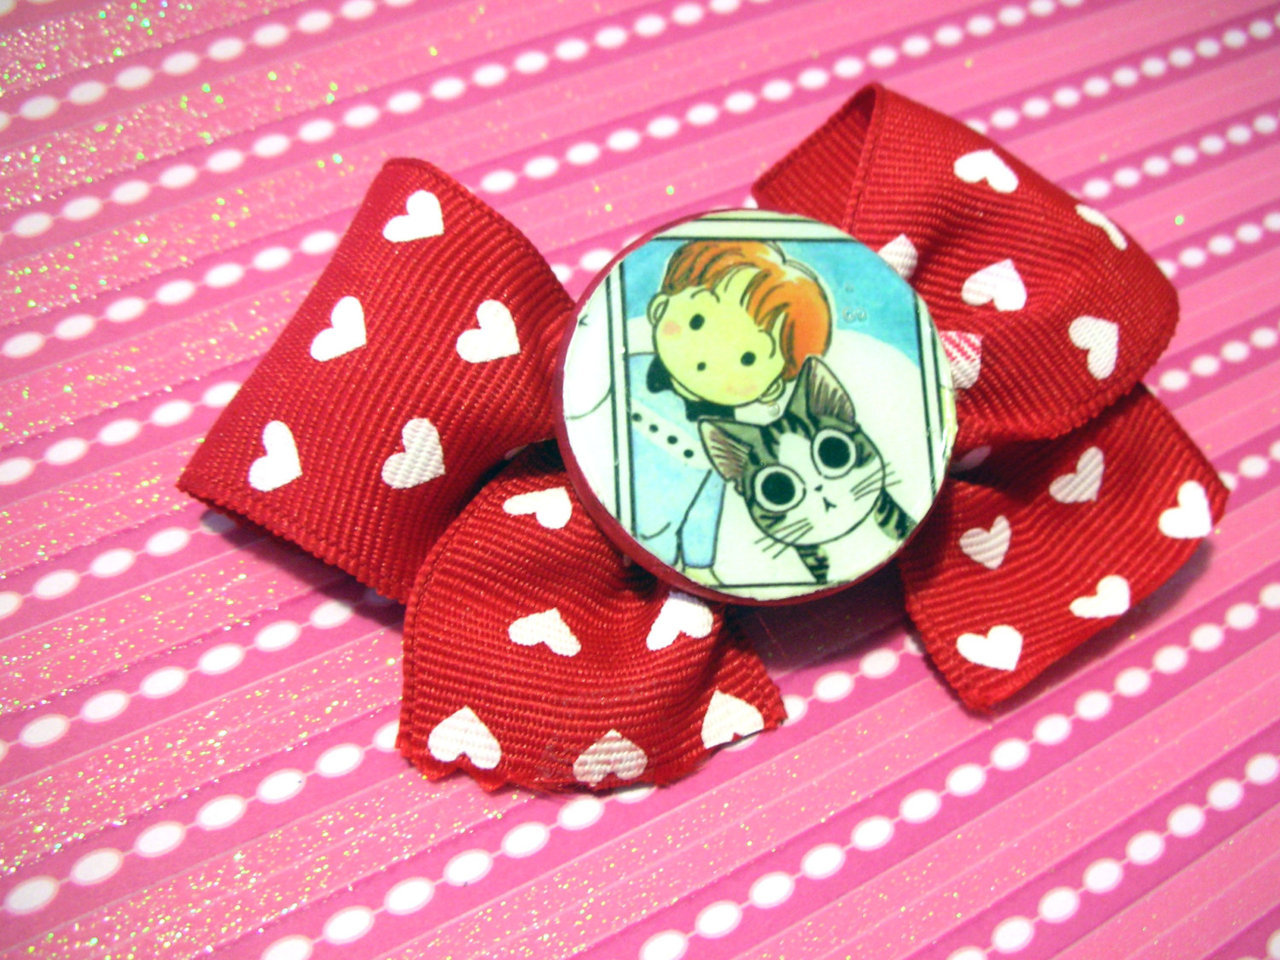 Chii's Sweet Home Manga Hair Bow Original Geekery FREE USA SHIPPING http://www.etsy.com/listing/97345856/chiis-sweet-home-manga-hair-bow-original